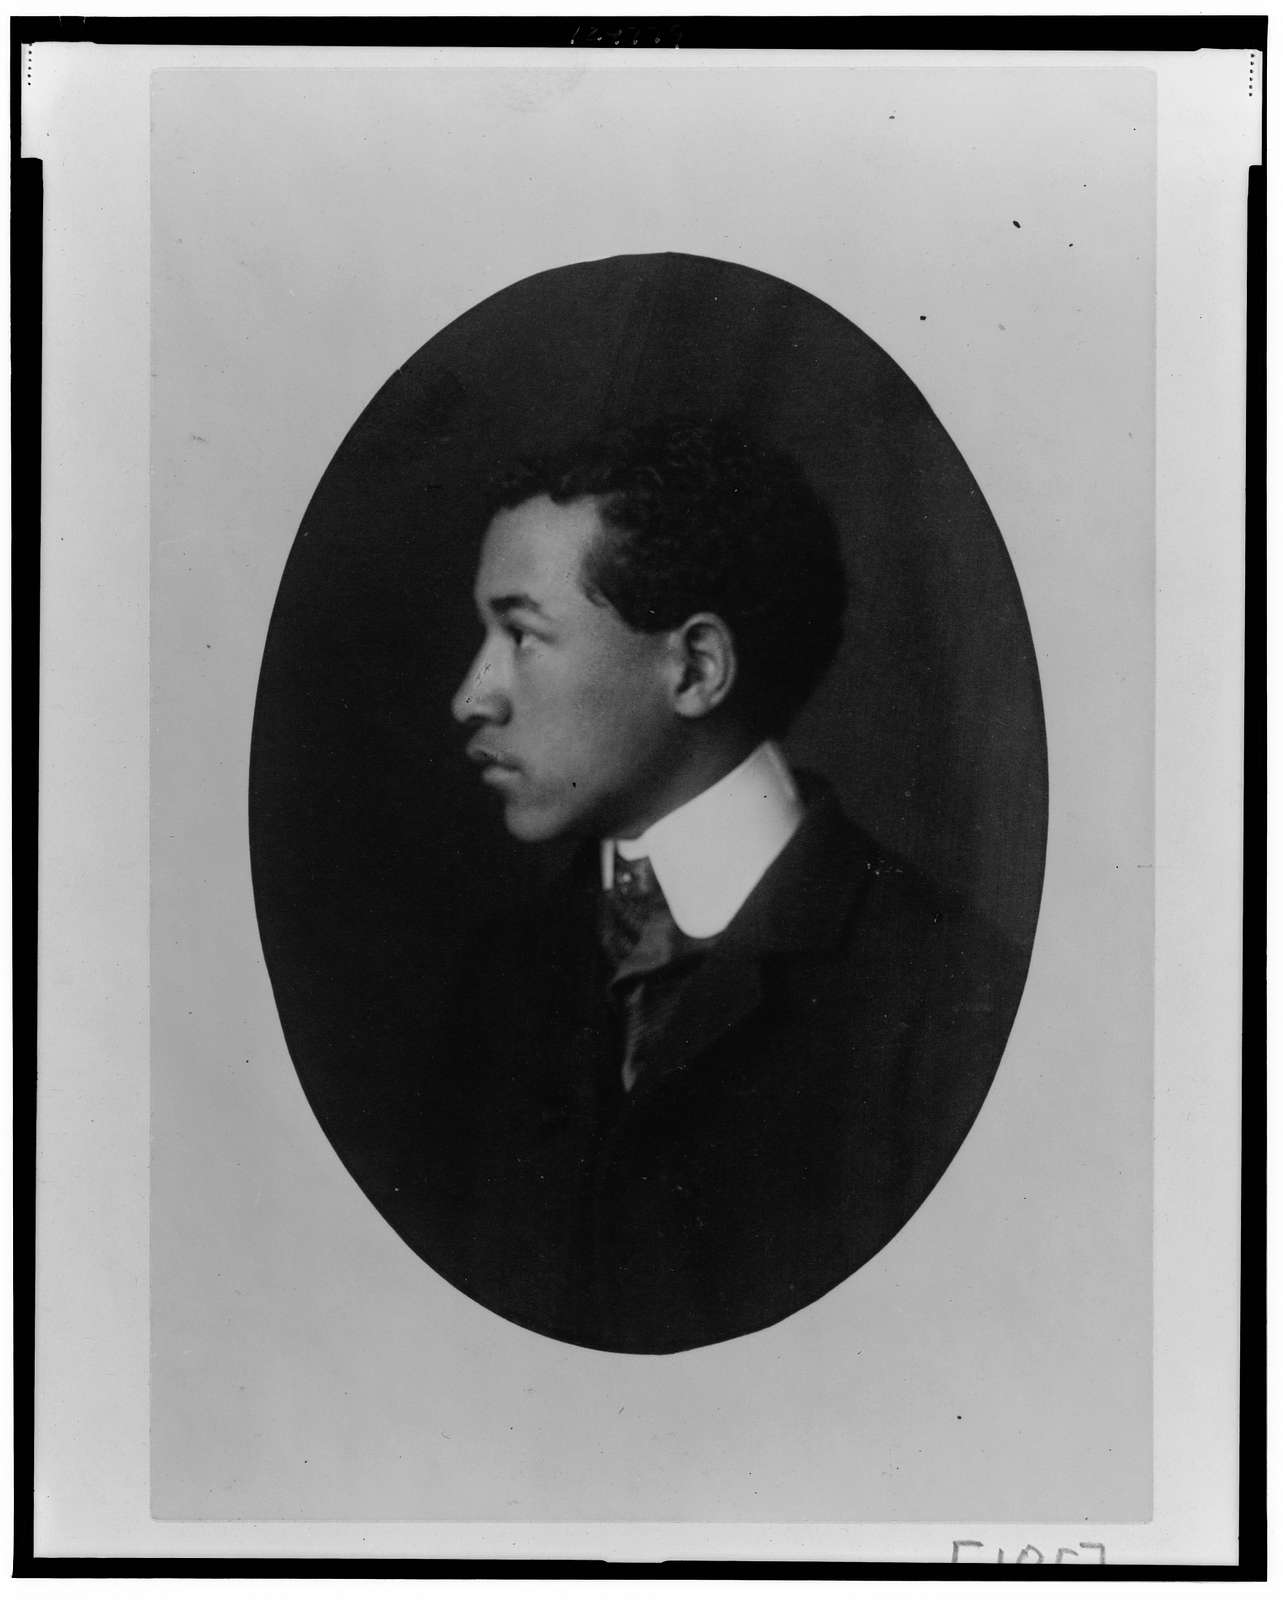 [African American man, head-and-shoulders portrait, left profile]